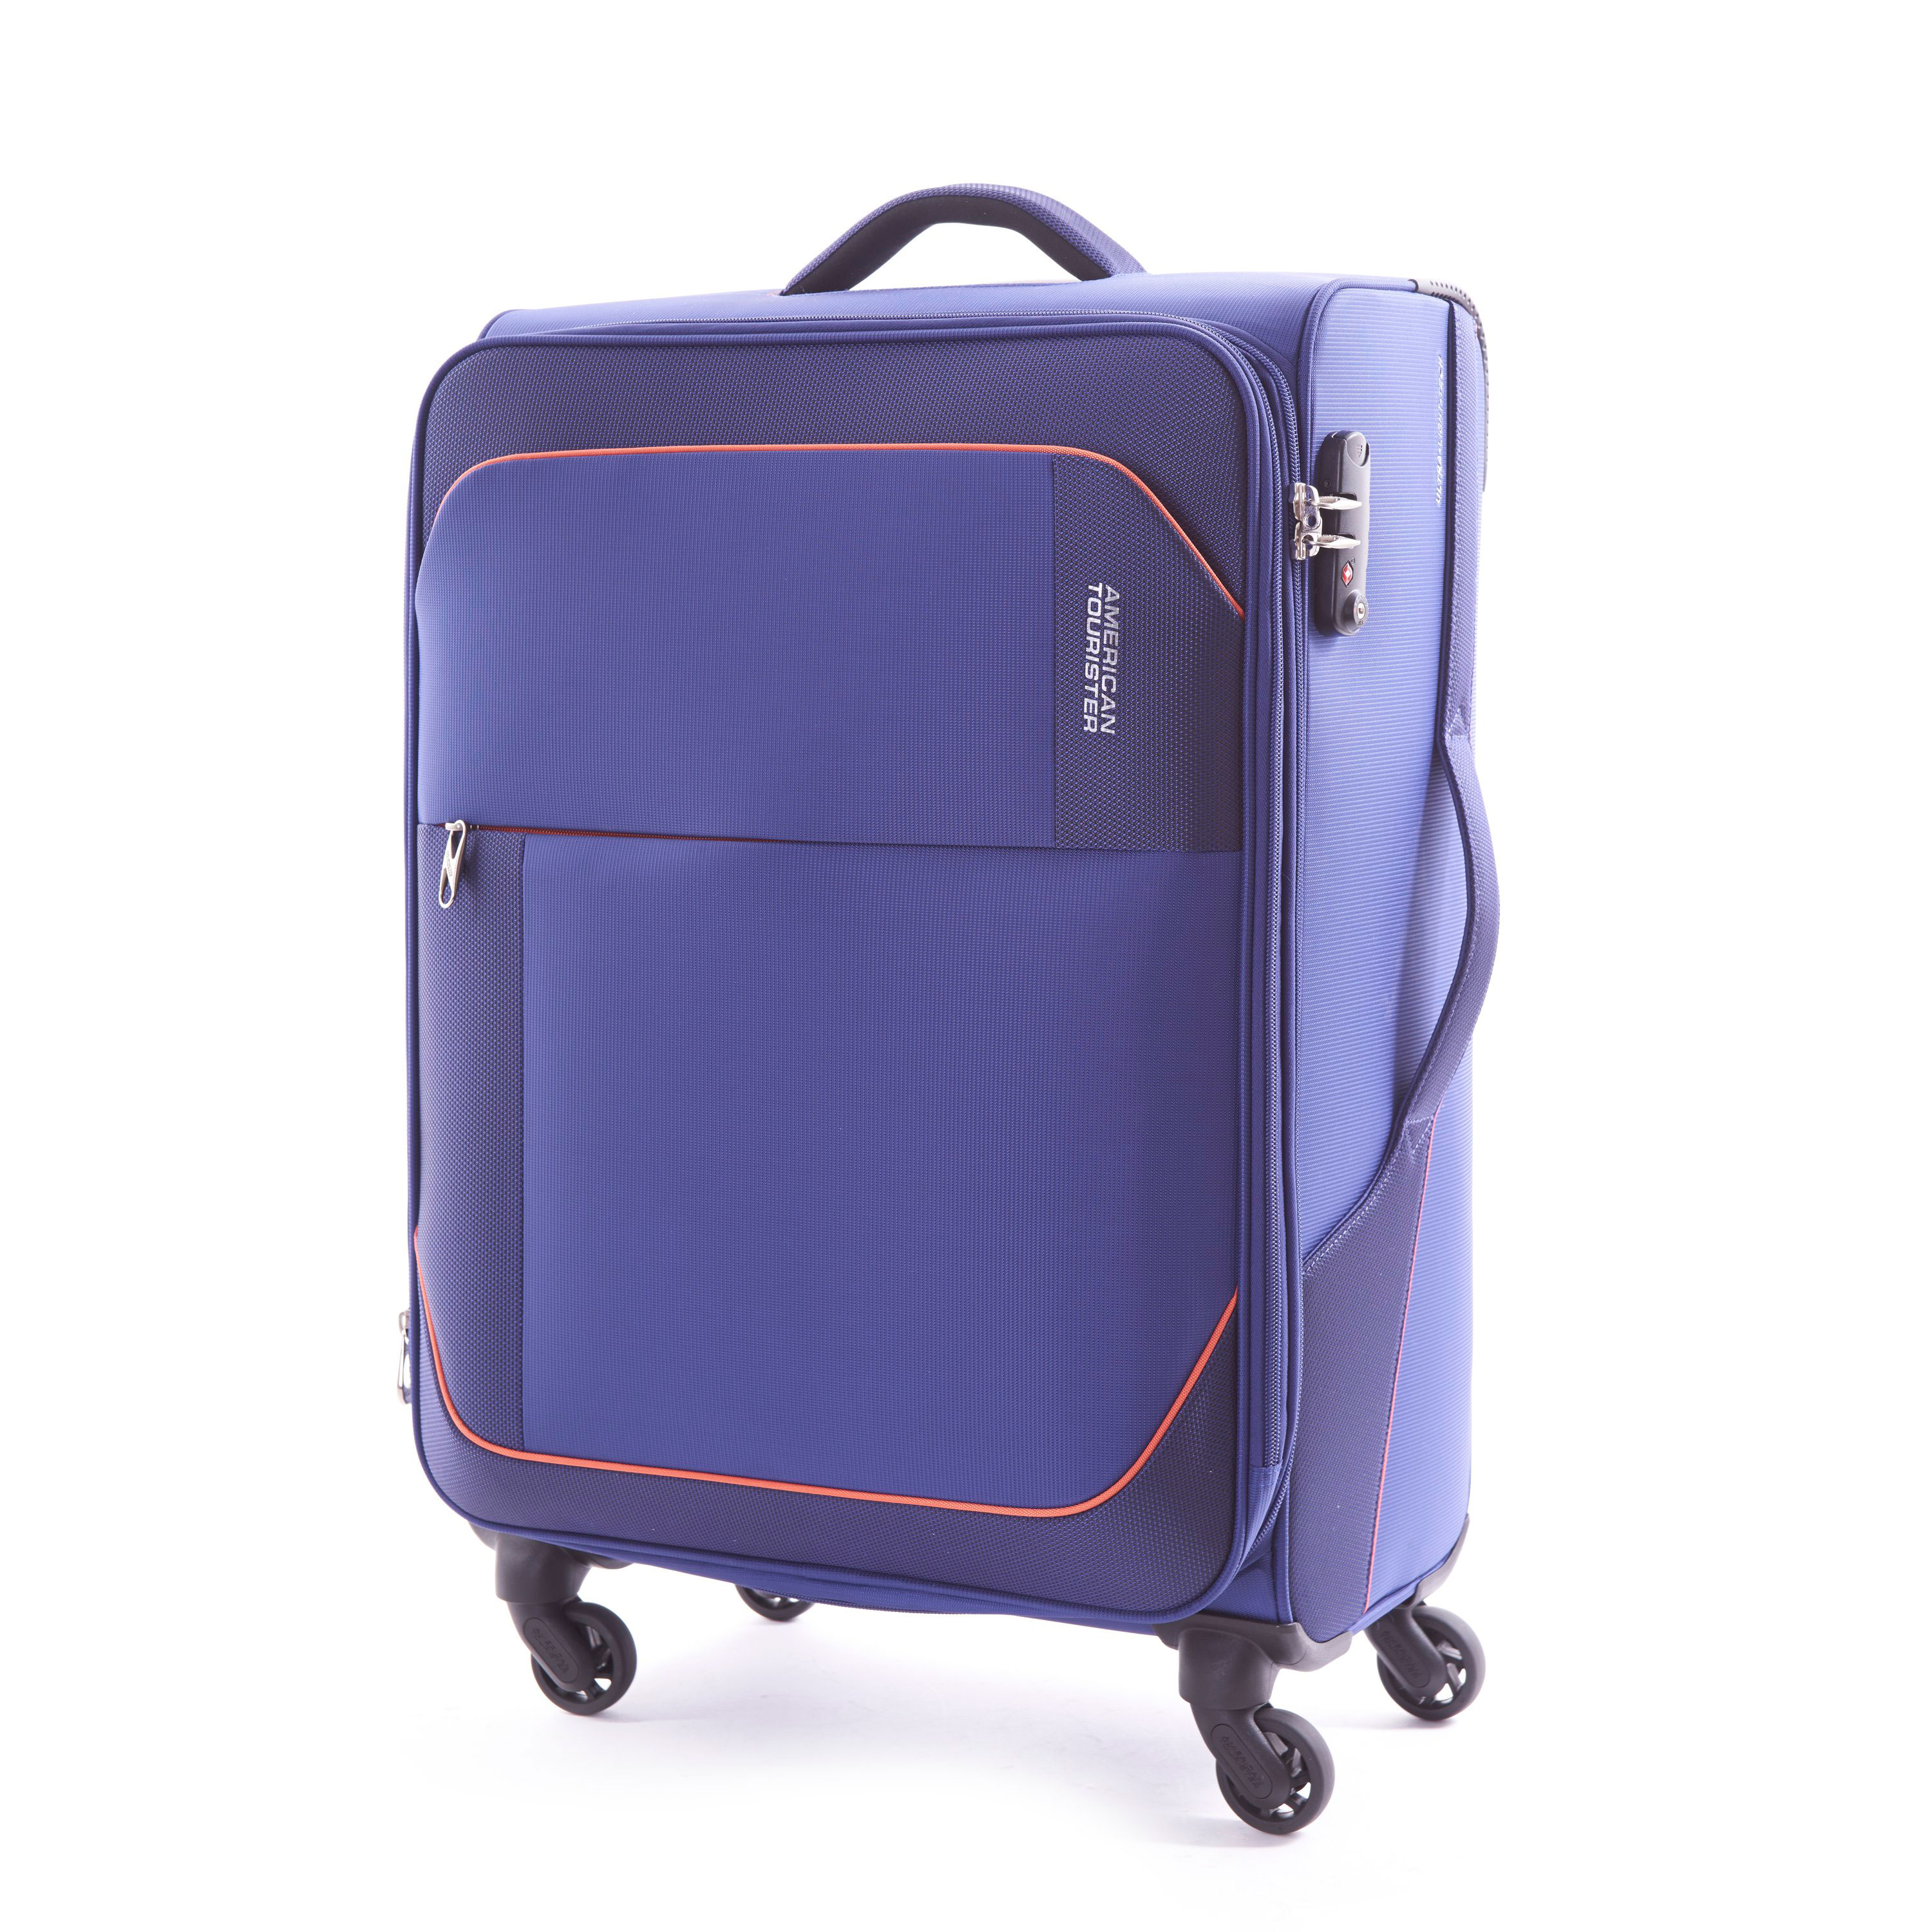 dating american tourister luggage Items 1 - 24 of 33 looking for american tourister luggage for your next vacation or business trip our american tourister inventory is cons.